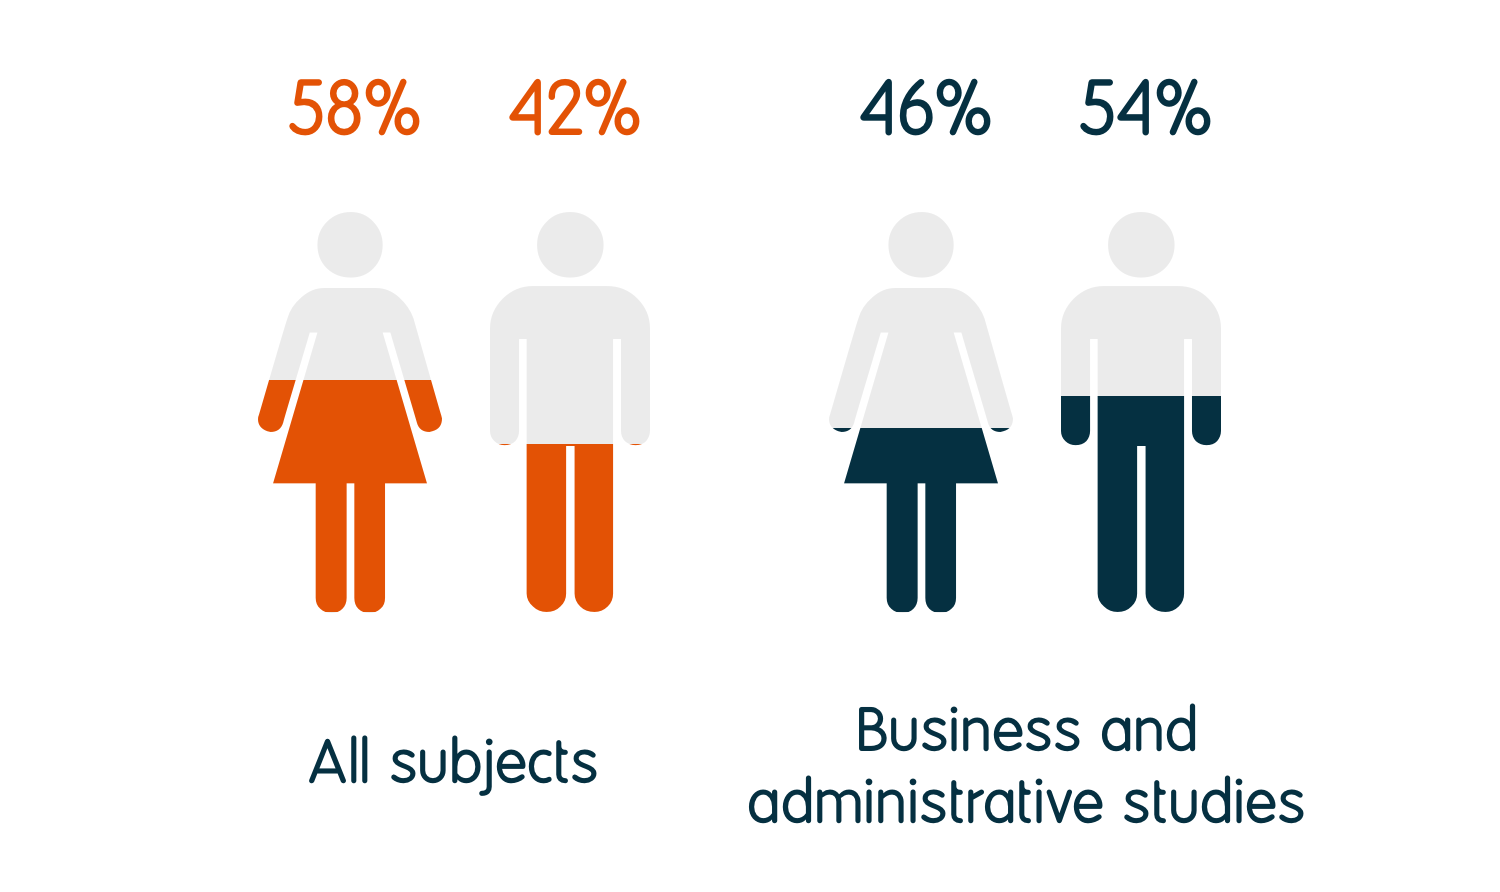 46% of business and administrative studies graduates identify as female and 54% as male, compared to 58% female and 42% male for all graduates.